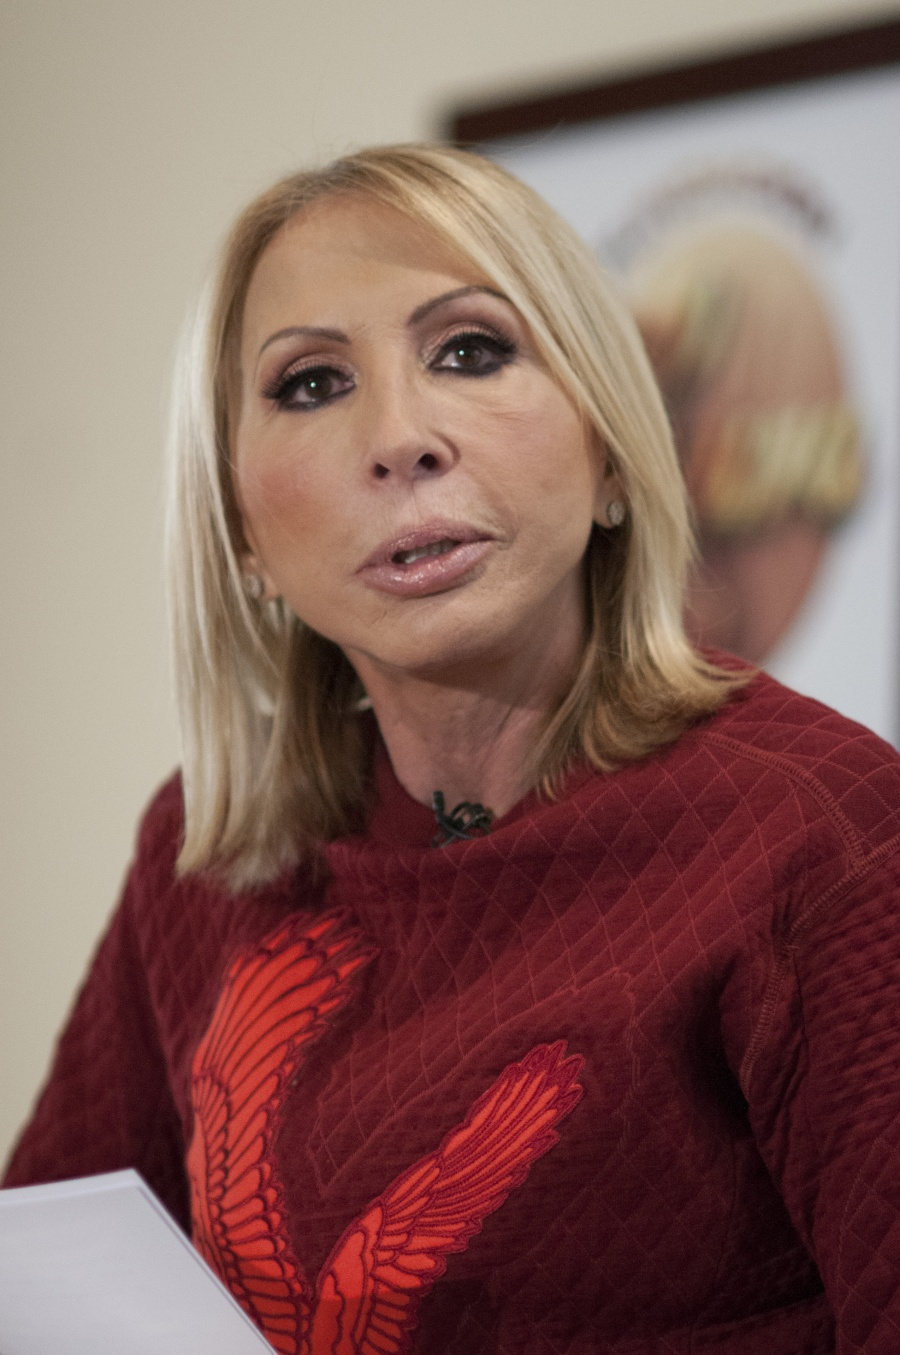 Laura Bozzo regresó su doctorado Honoris Causa